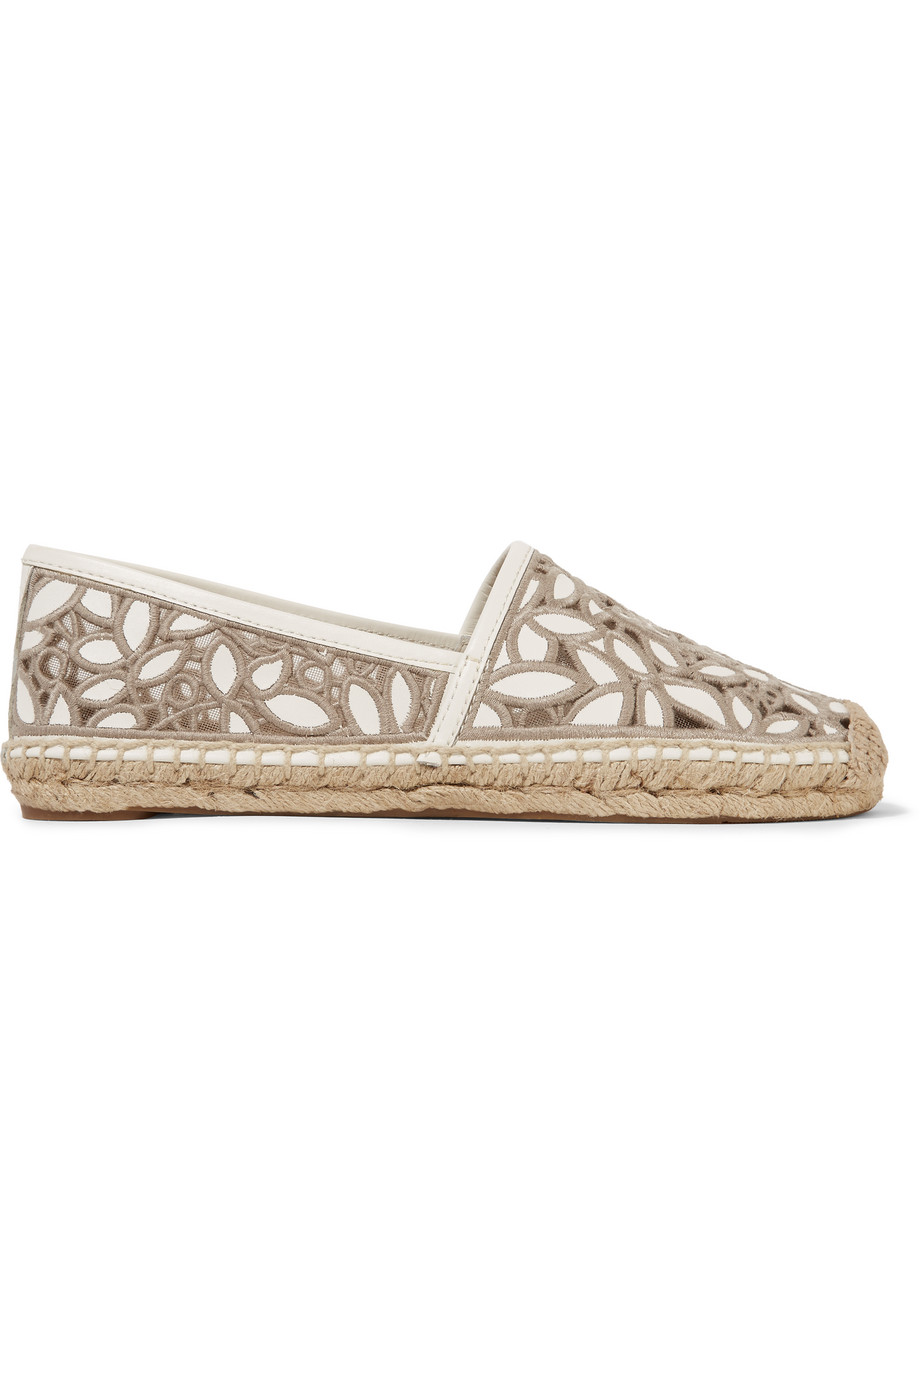 Tory Burch Rhea Embroidered Leather and Mesh Espadrilles, Taupe, Women's, Size: 9.5